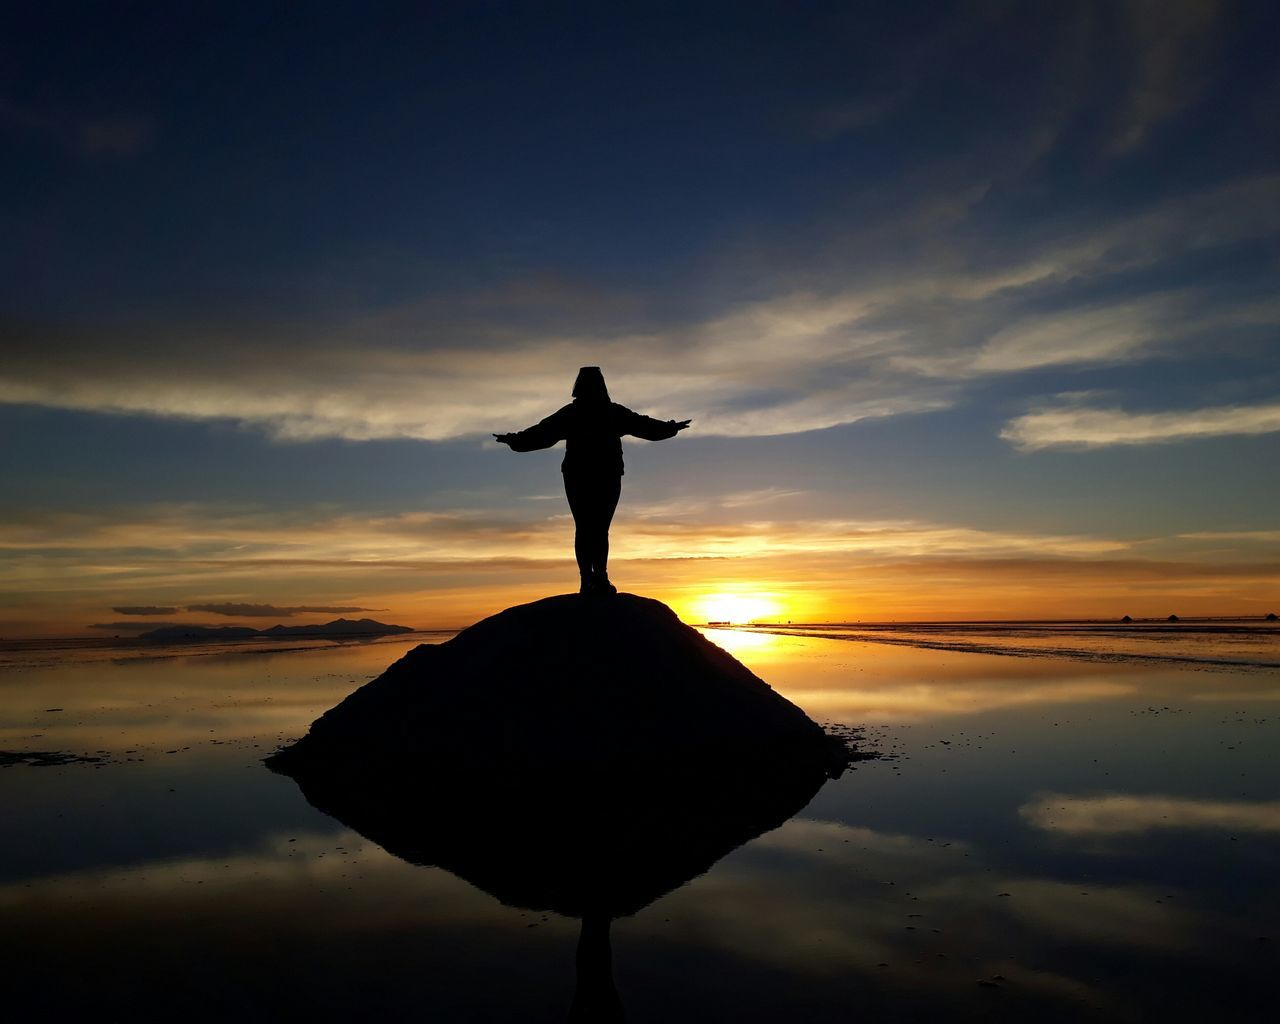 Feeling free.. Salar De Uyuni No Filter, No Edit, Just Photography Sunset Landscape Outdoors Beauty Travel Peaceful Place Water Beautiful View Nature Happy Sky Sin Filtros One Woman Only No Filter No Edit Just Photography Cheerful